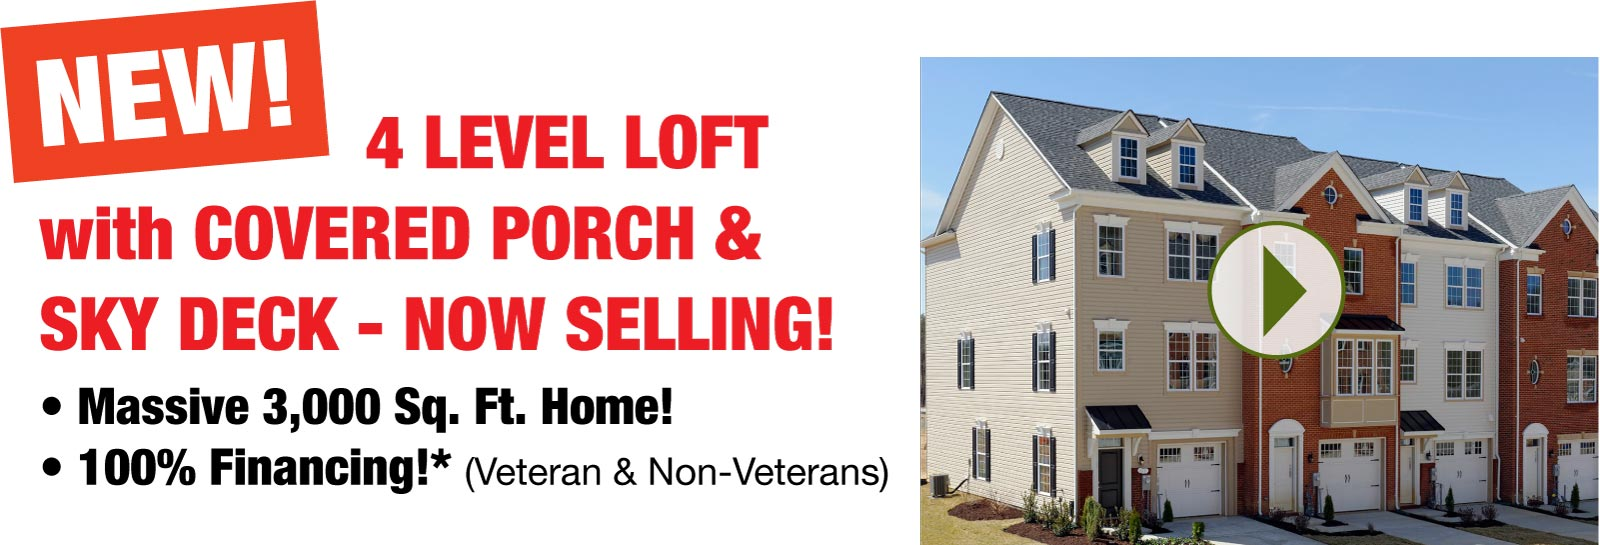 New 4-level loft with covered porch and sky deck - now selling!